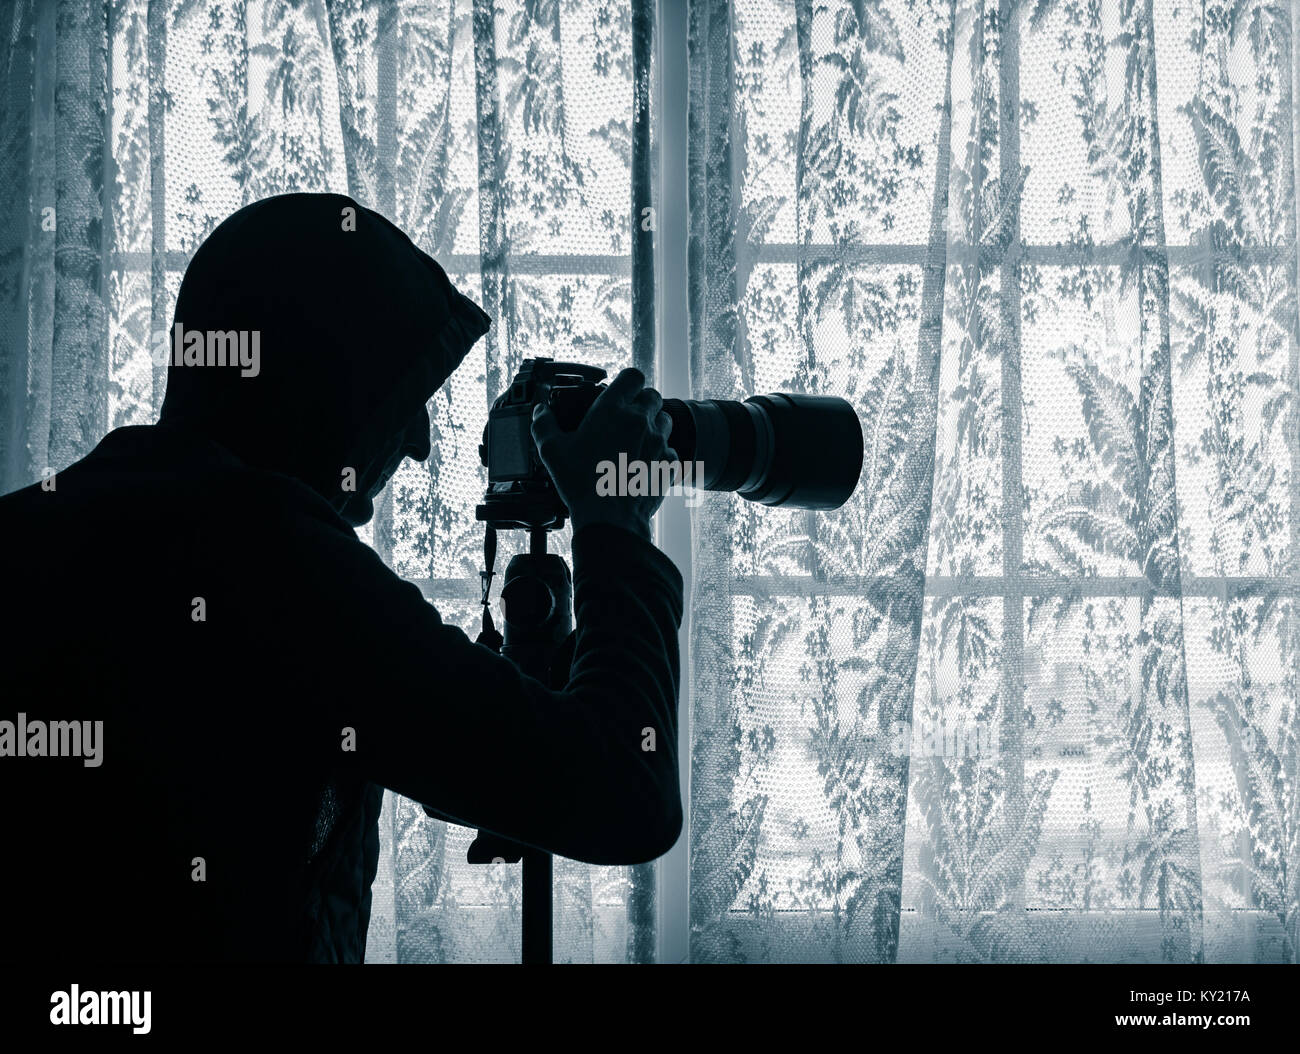 Man wearing hoodie at window looking at LCD screen of camera which has telephoto lens attached. Concept image for - Stock Image